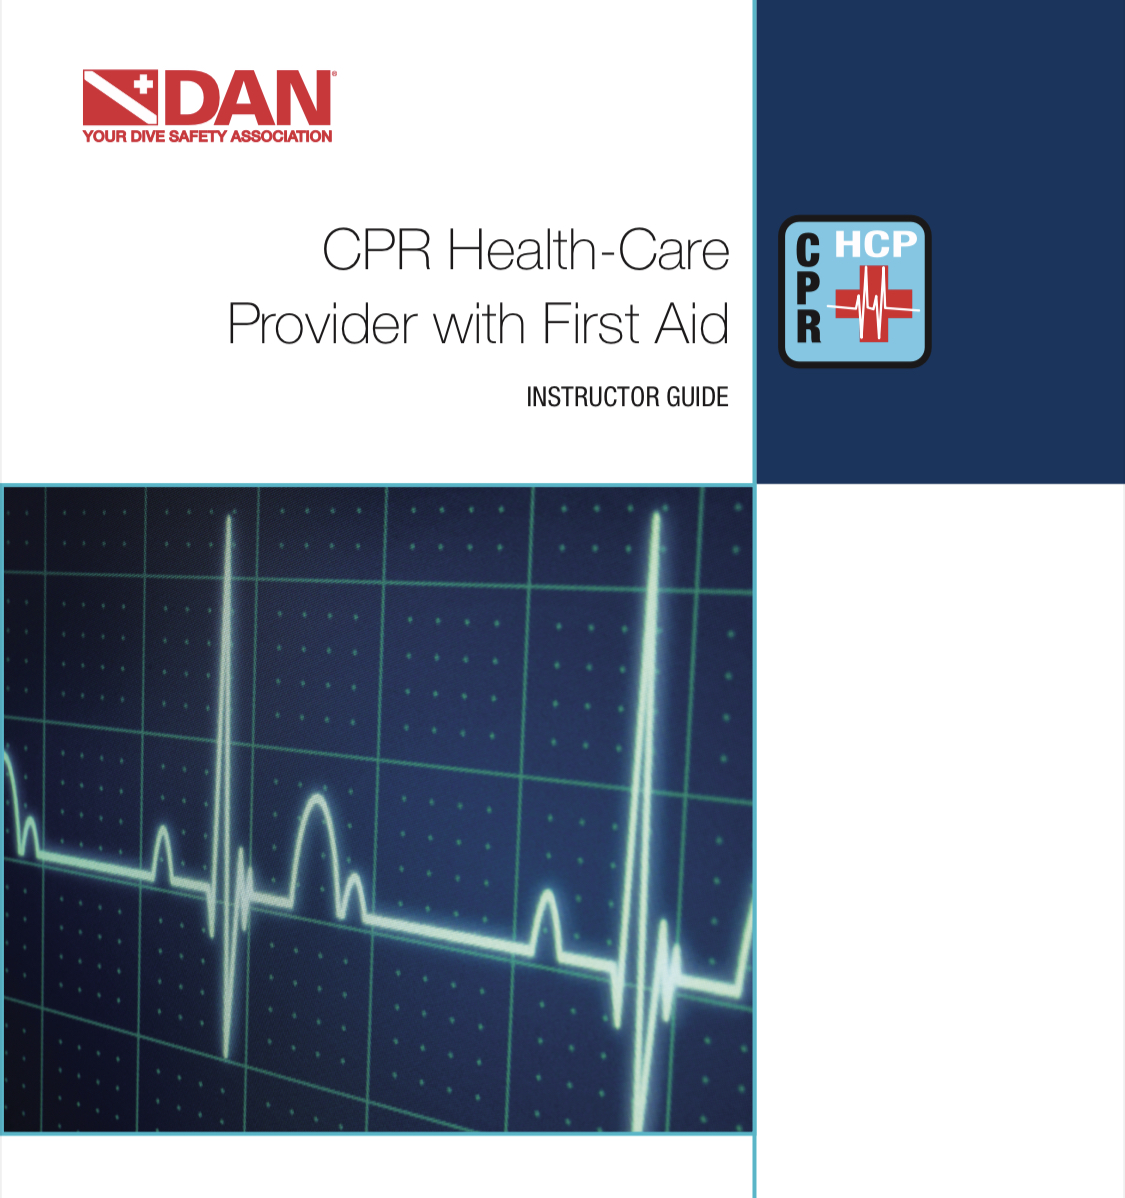 DAN CPR Health Care Provider with First Aid